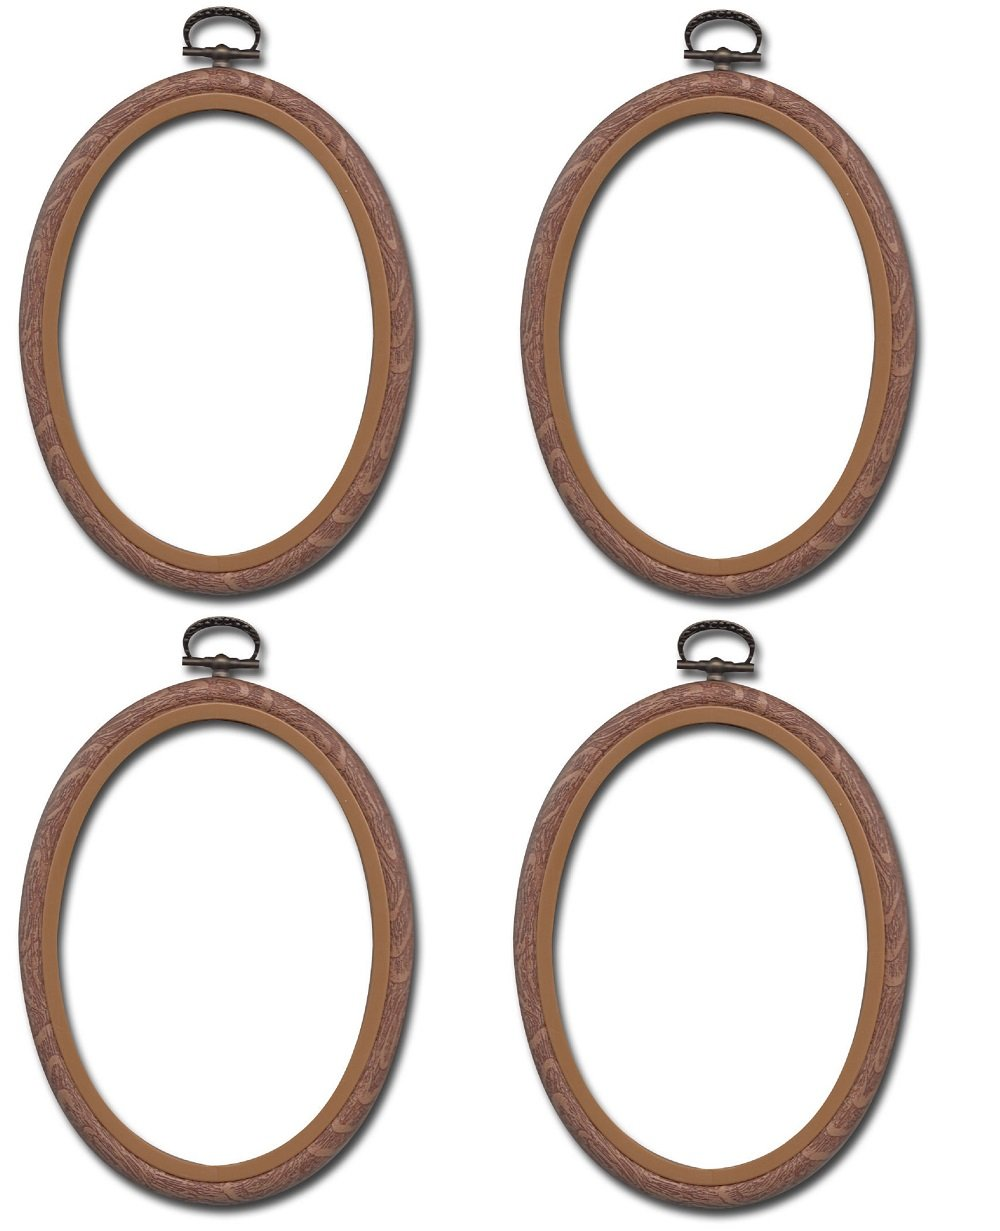 Lumiere Embroidery Hoop Oval Cross Stitch Hoop 4 Pieces Ring Ornament (S)